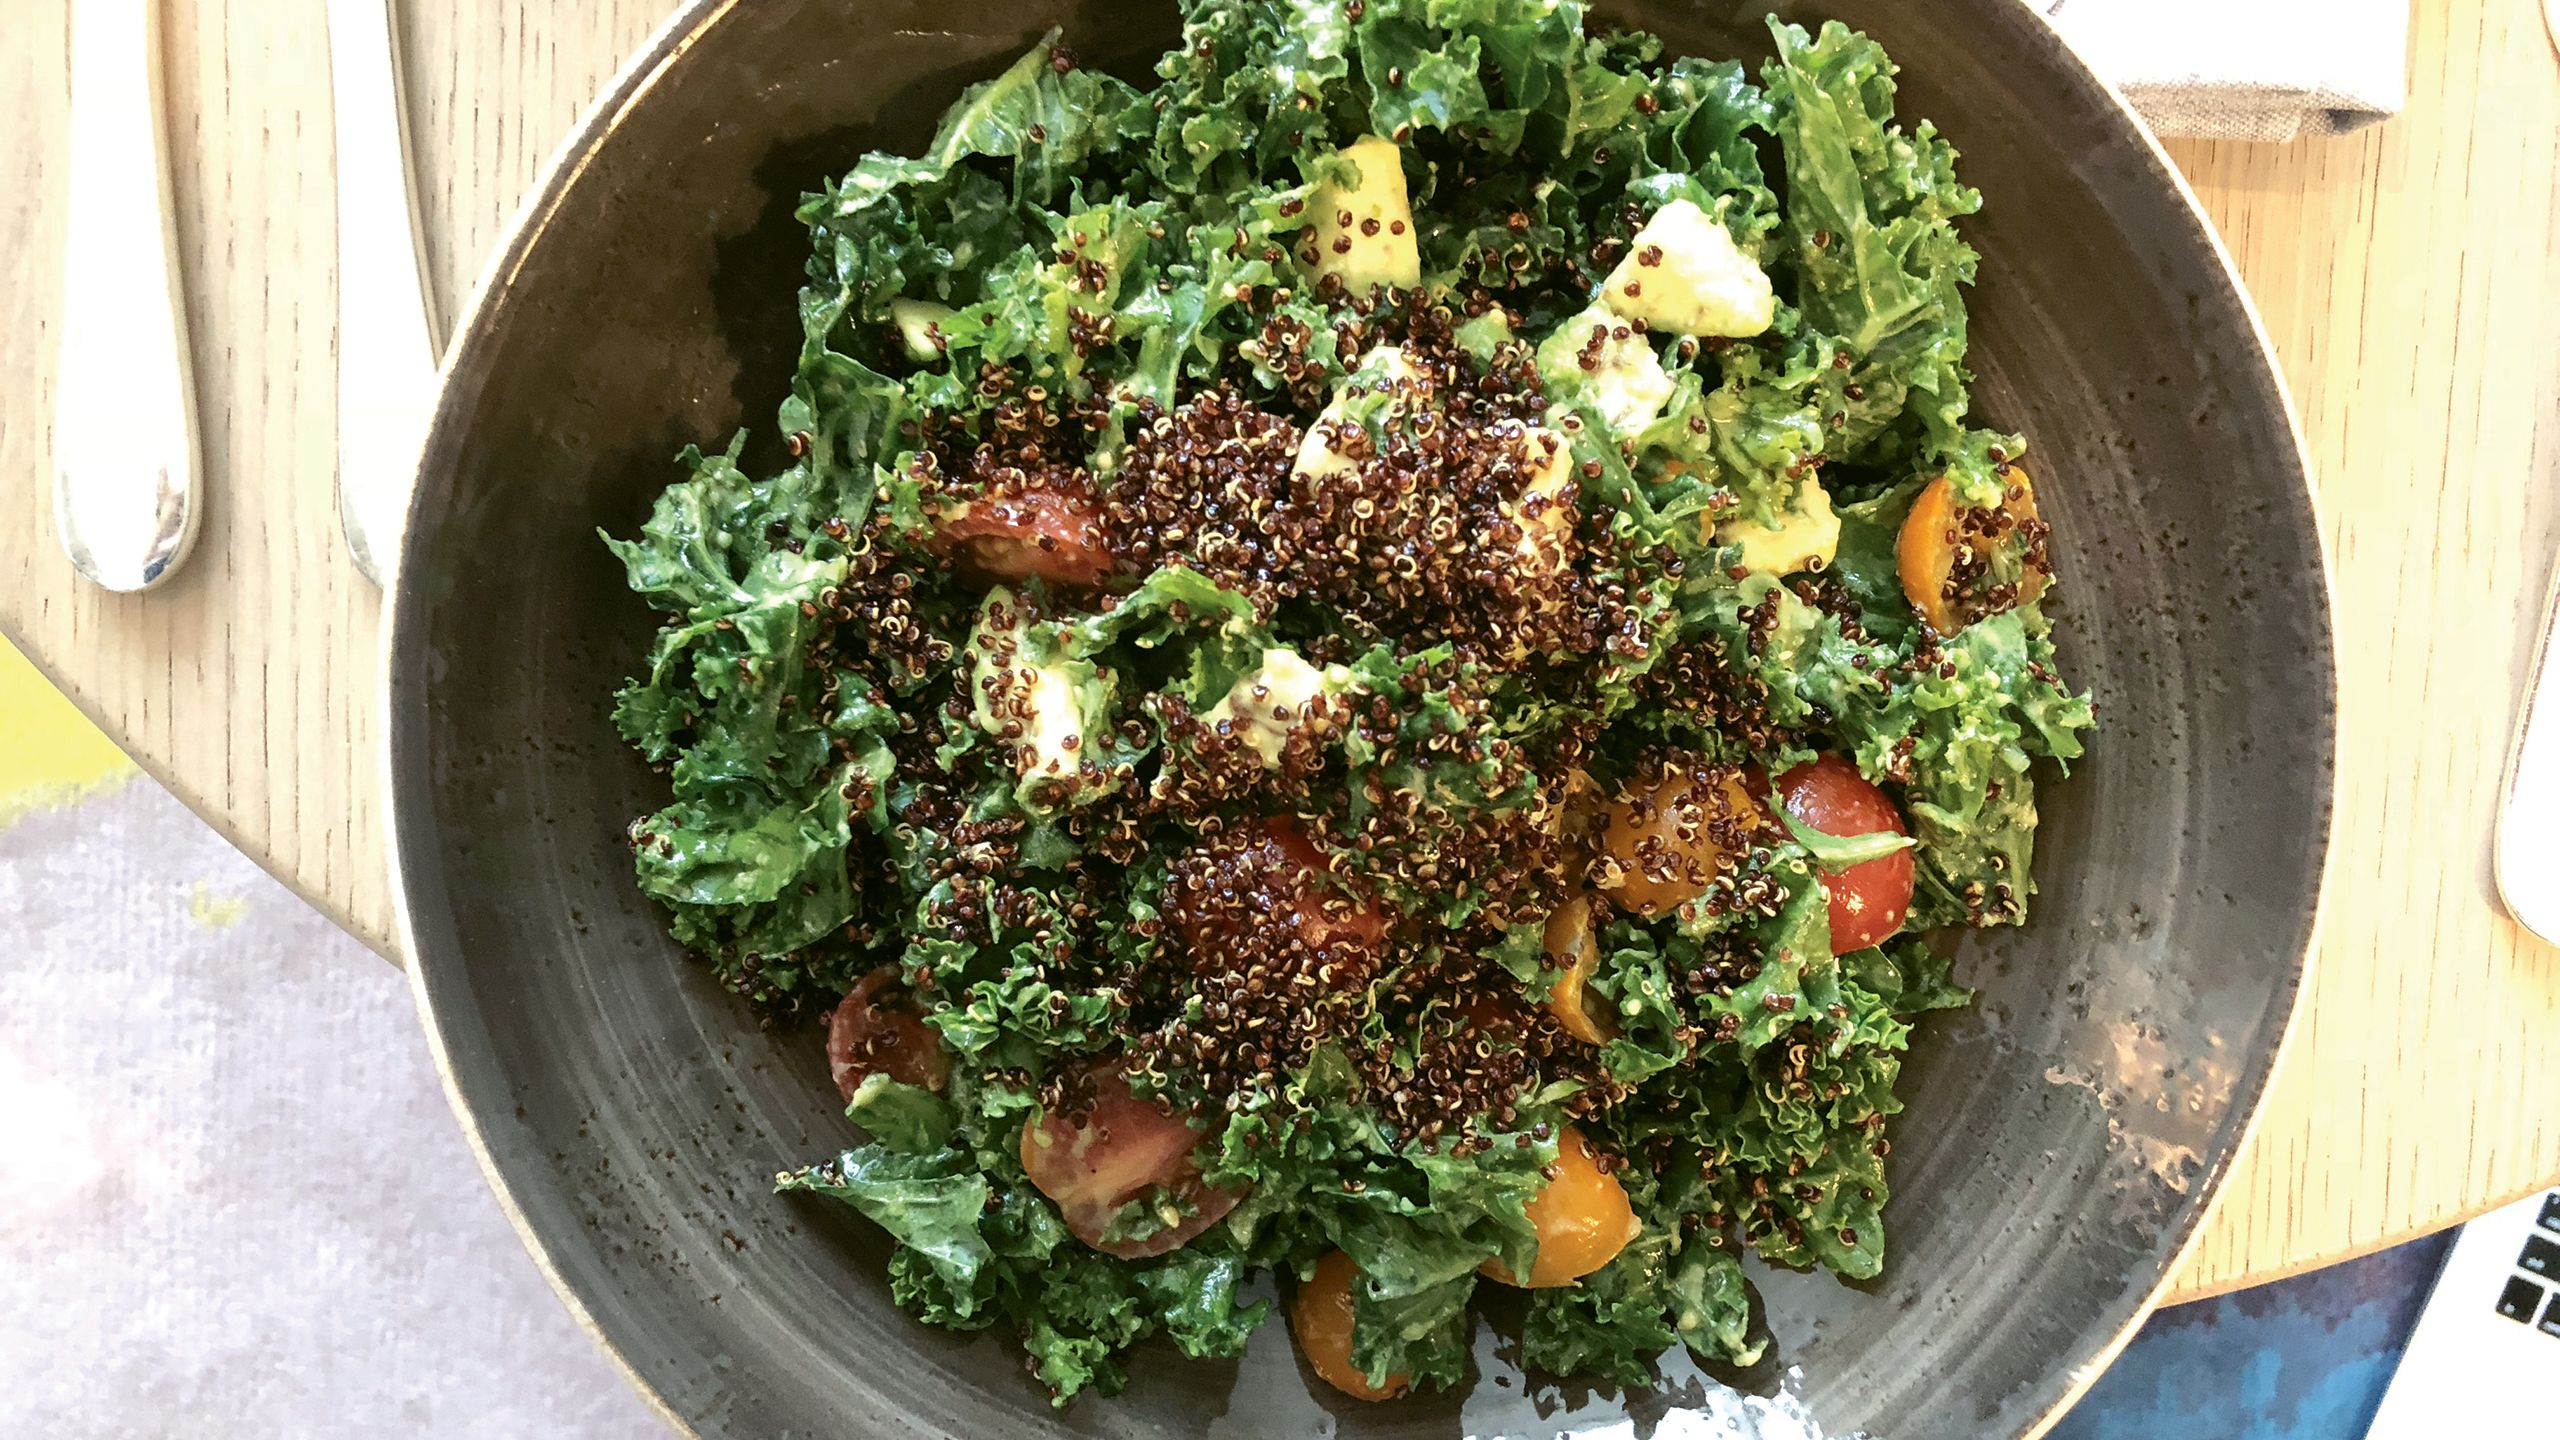 The kale and avocado salad topped with crispy quinoa at the Four Seasons Hotel New York Downtown. Photo by Johanna Jainchill